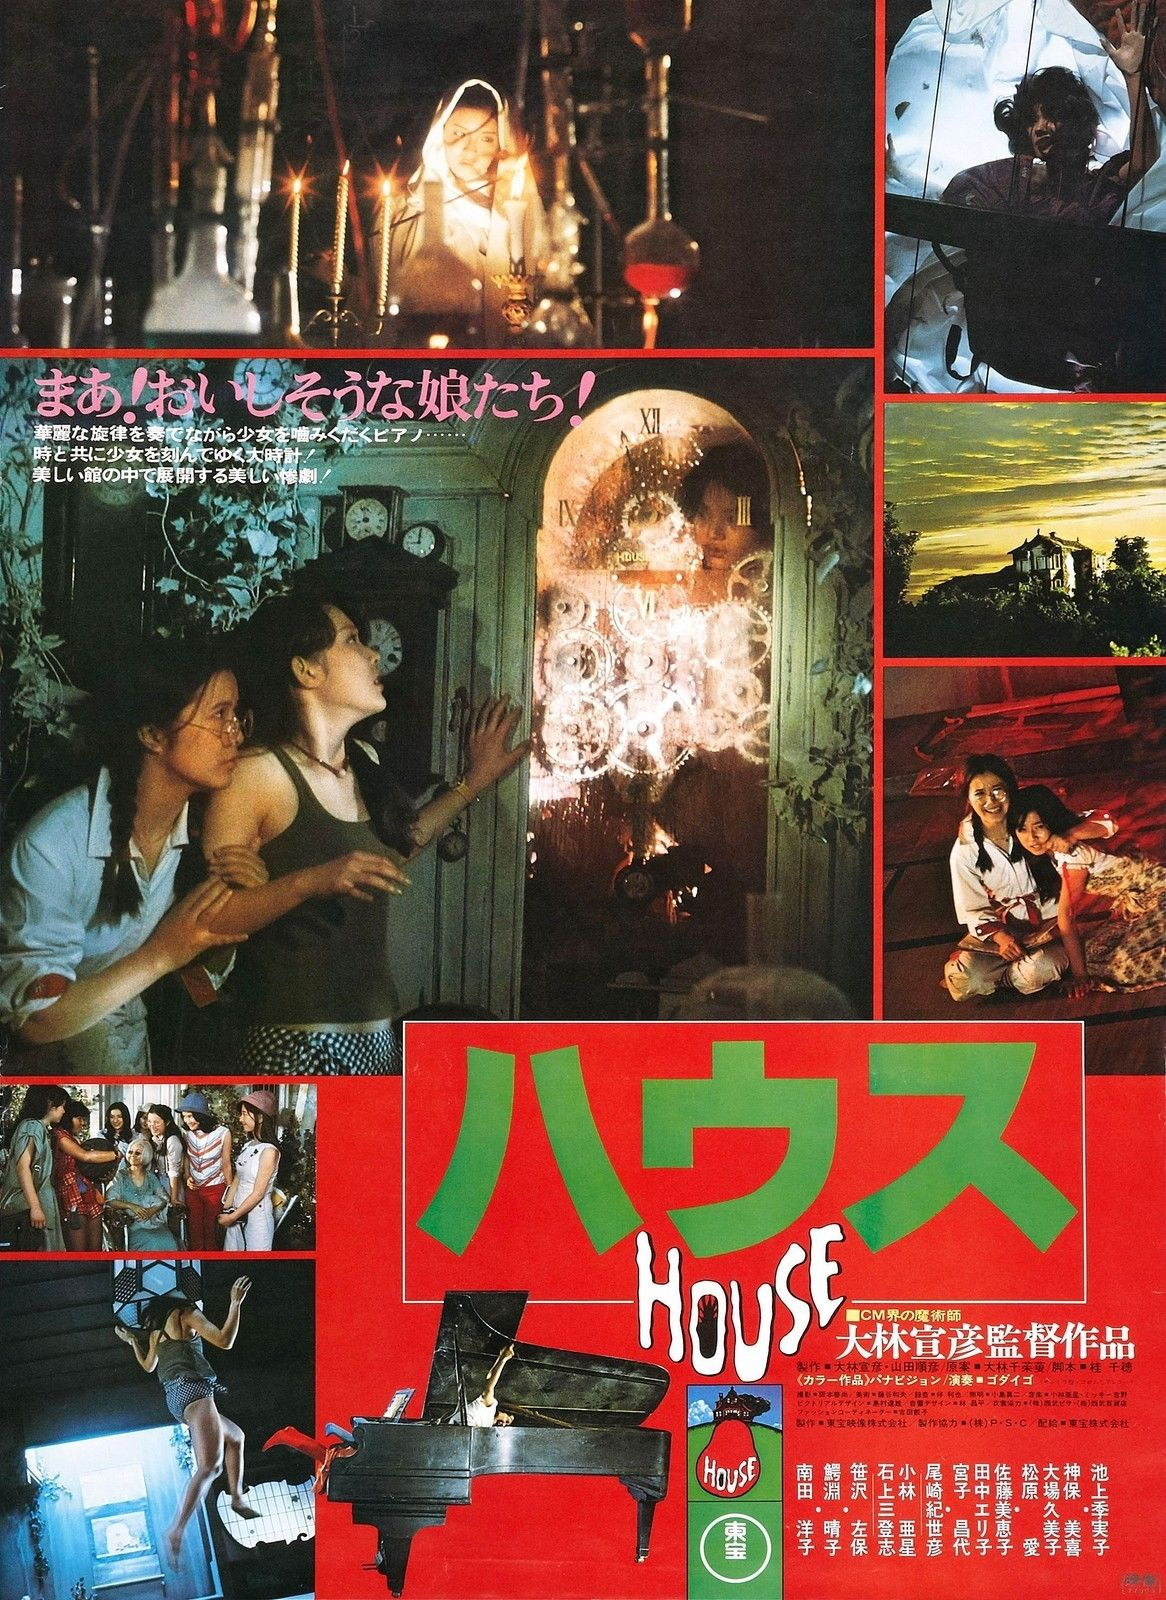 73831-HOUSE-Movie-1986-Horror-RARE-Wall-Print-Poster-Affiche